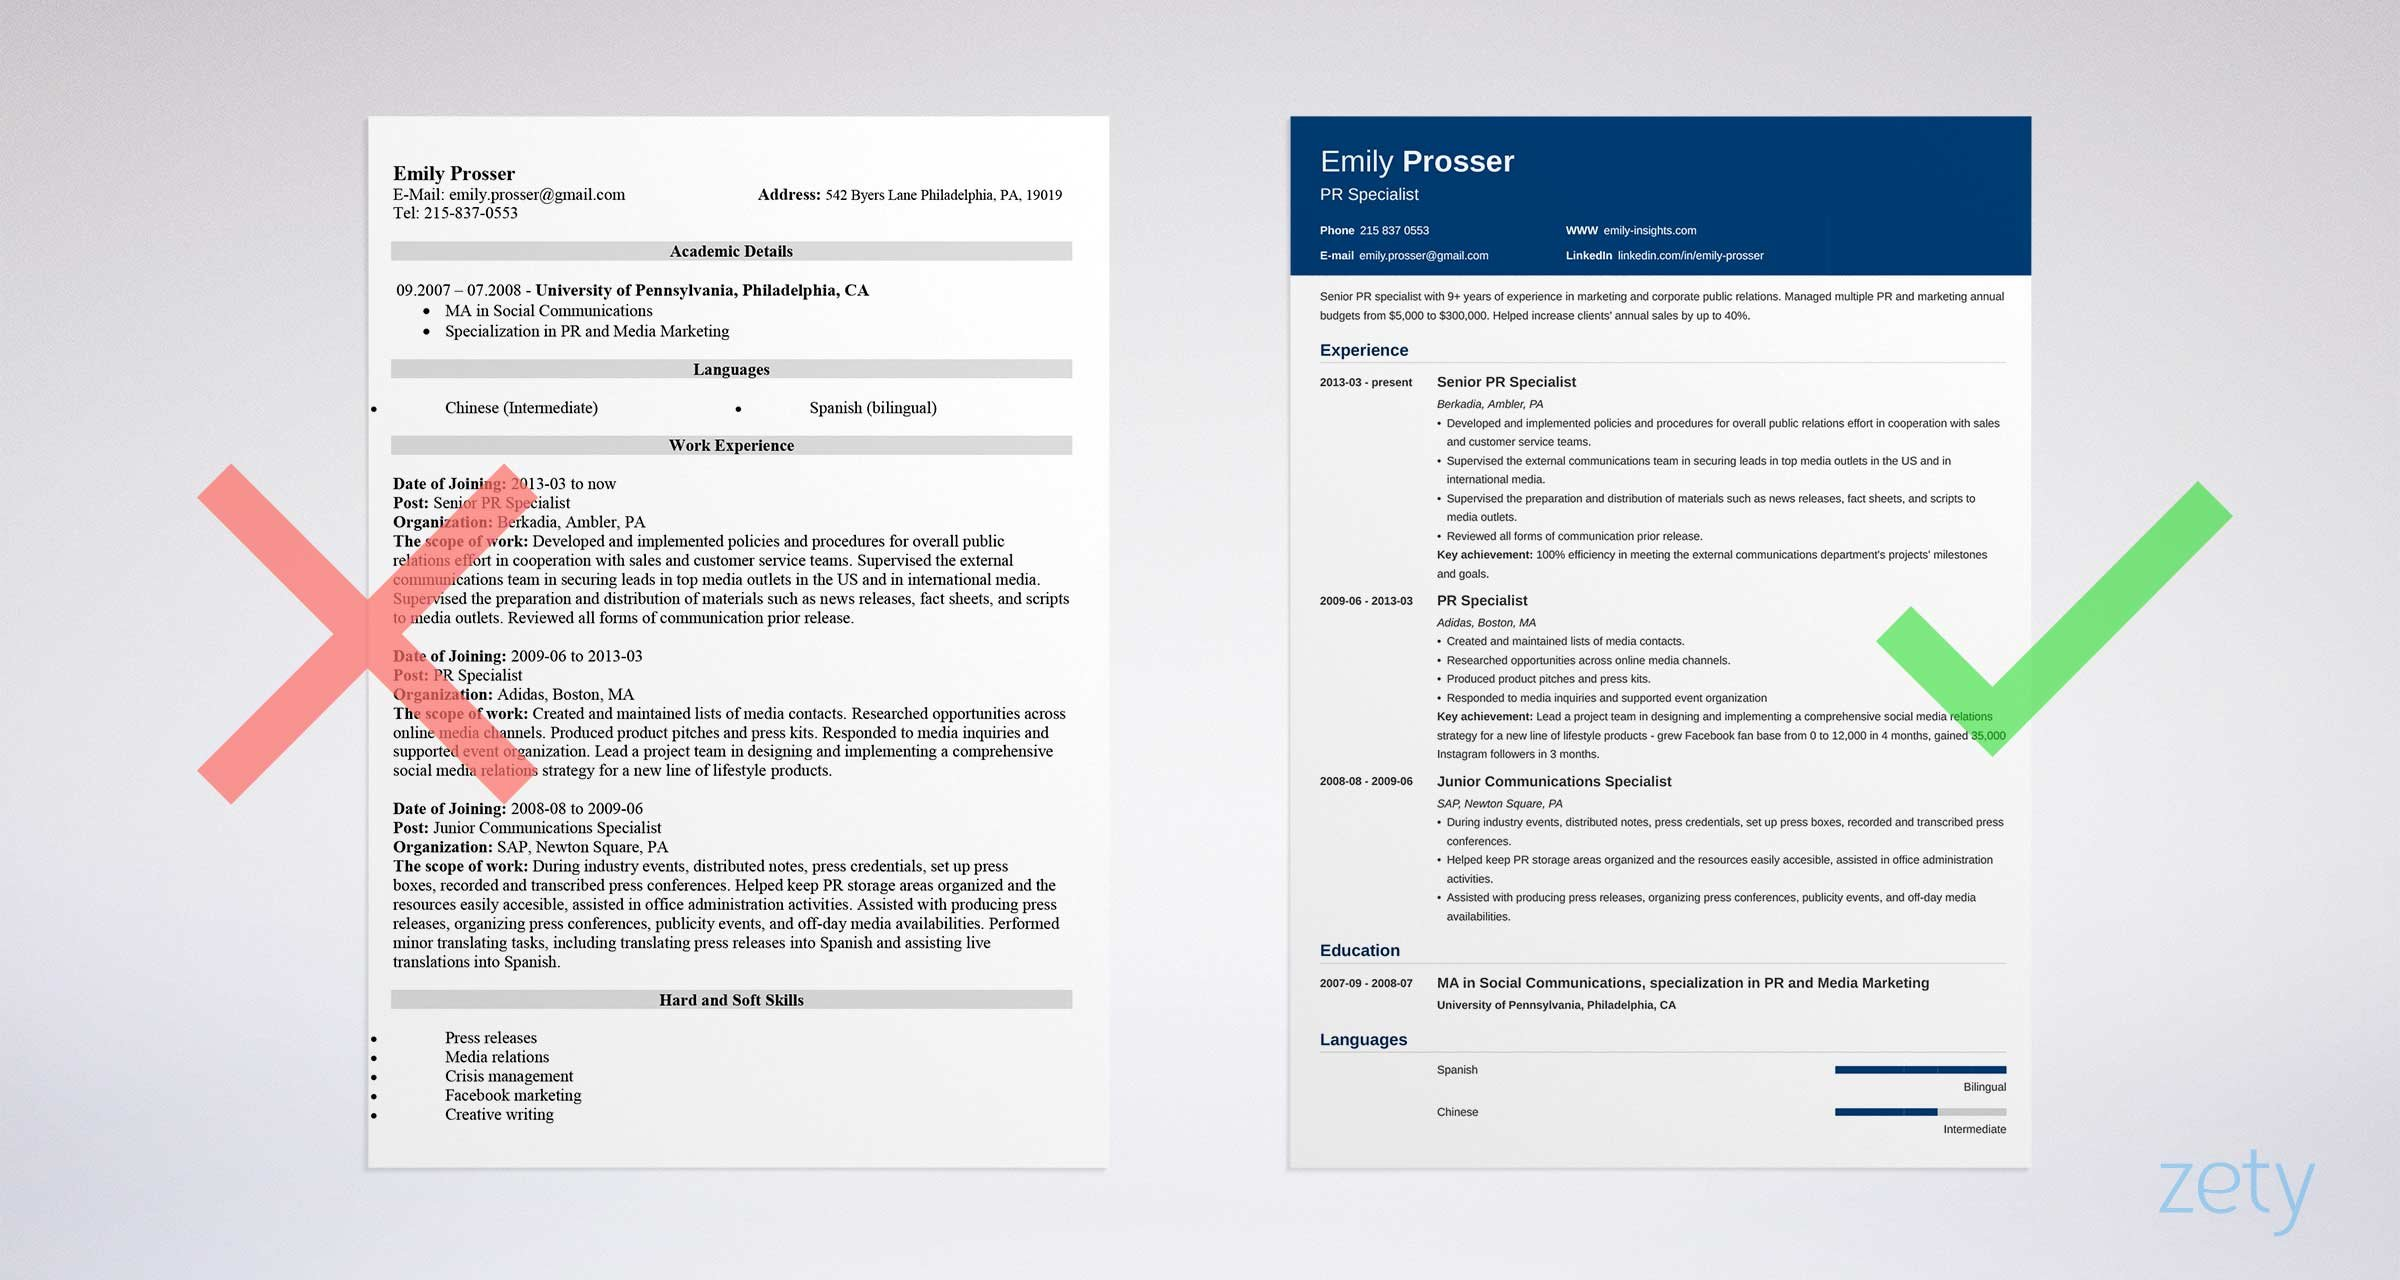 free google docs resume templates drive alternatives simple tips for on cardstock nice Resume Simple Resume Google Docs